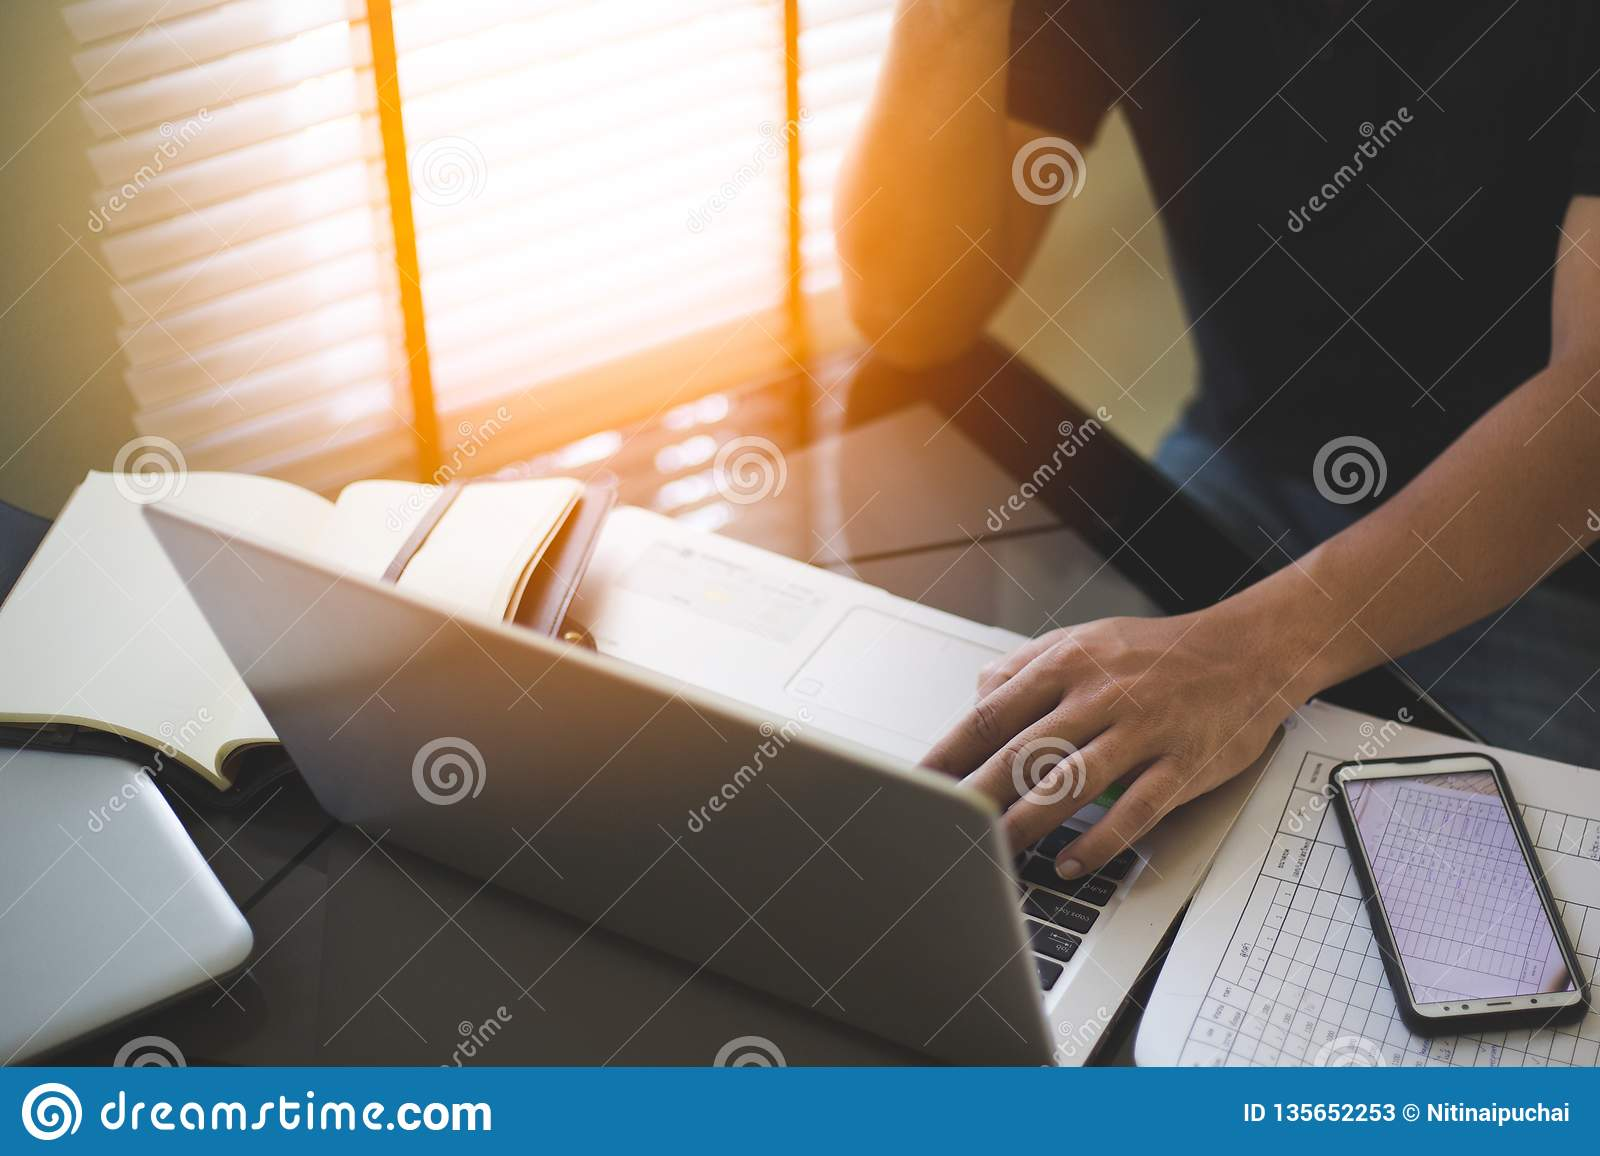 Business man working and analysis on laptop